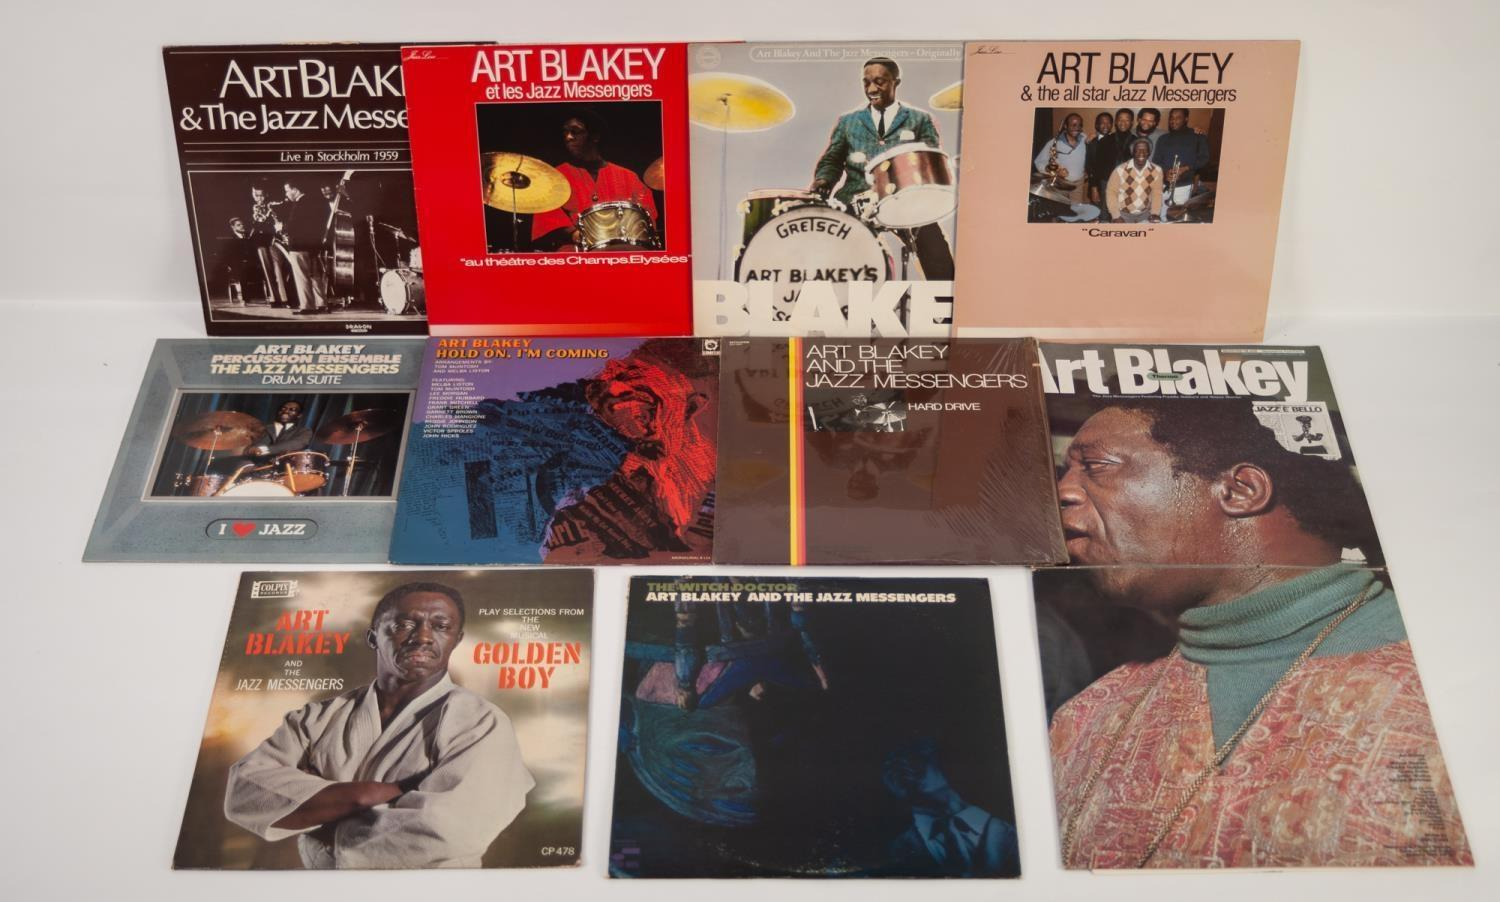 JAZZ, VINYL RECORDS- B IS FOR ART BLAKEY-THE WITCH DOCTOR, Blue Note (BST 84258). Art Blakey and the